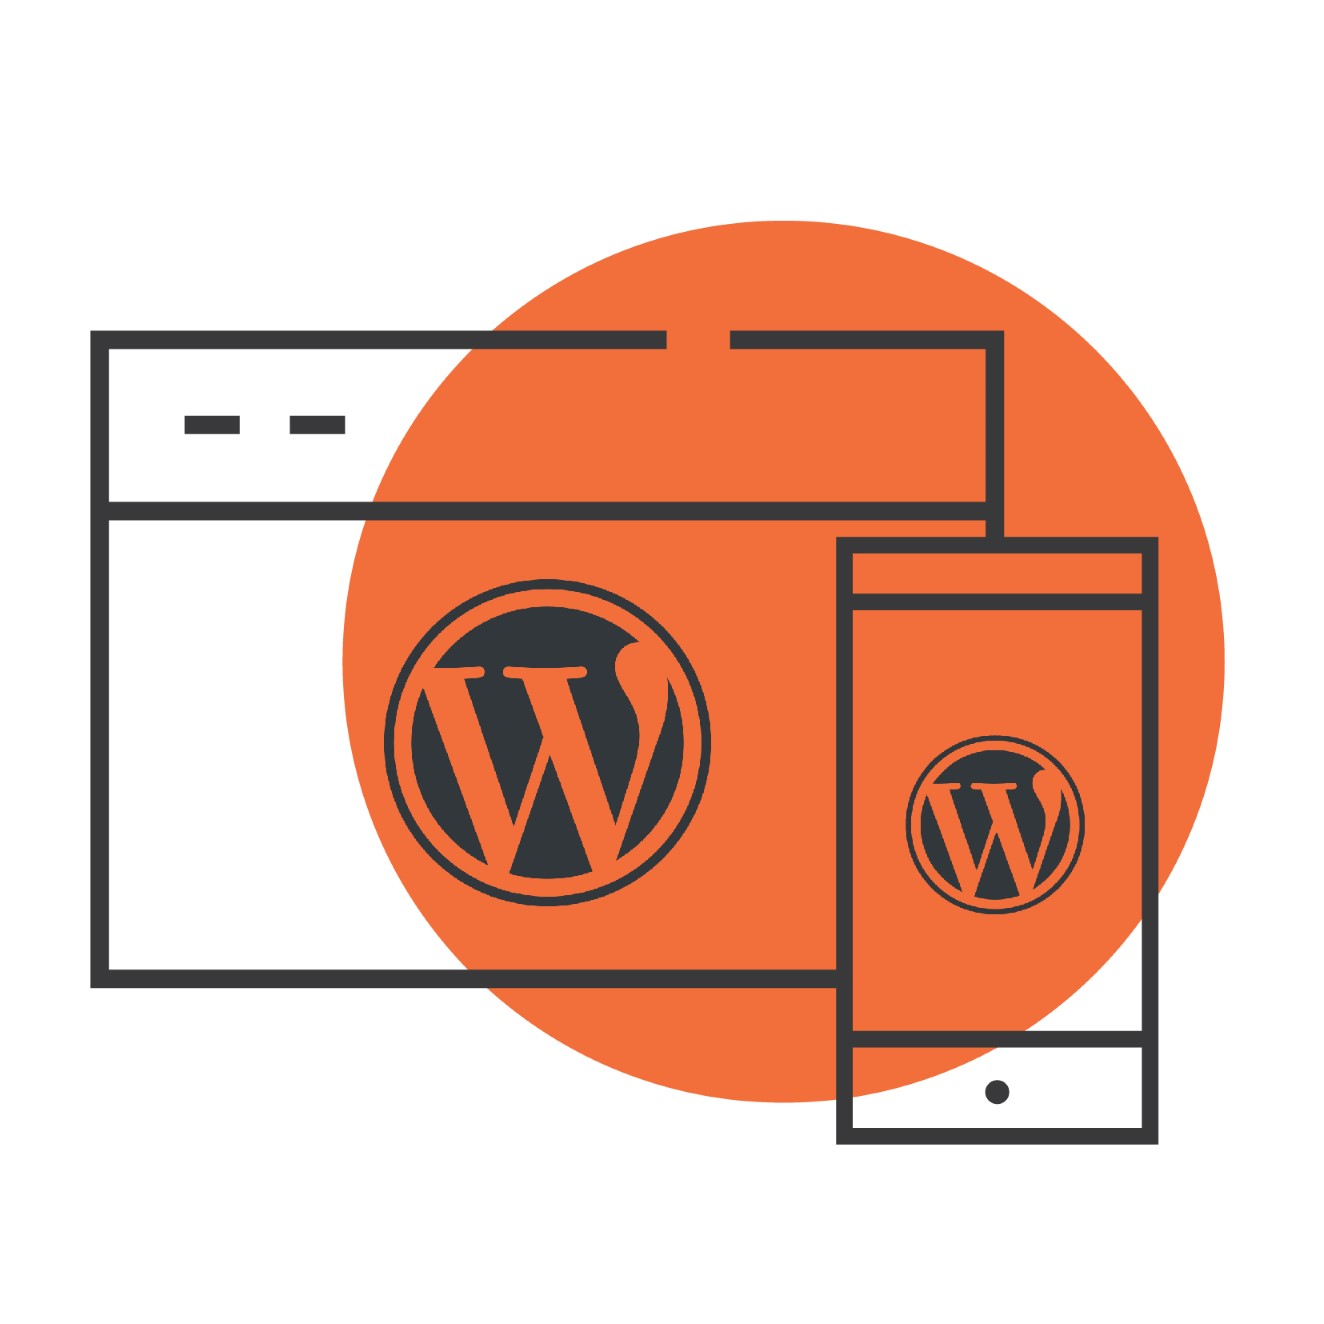 wordpress logo on a pc and on a smartphone with orange circle